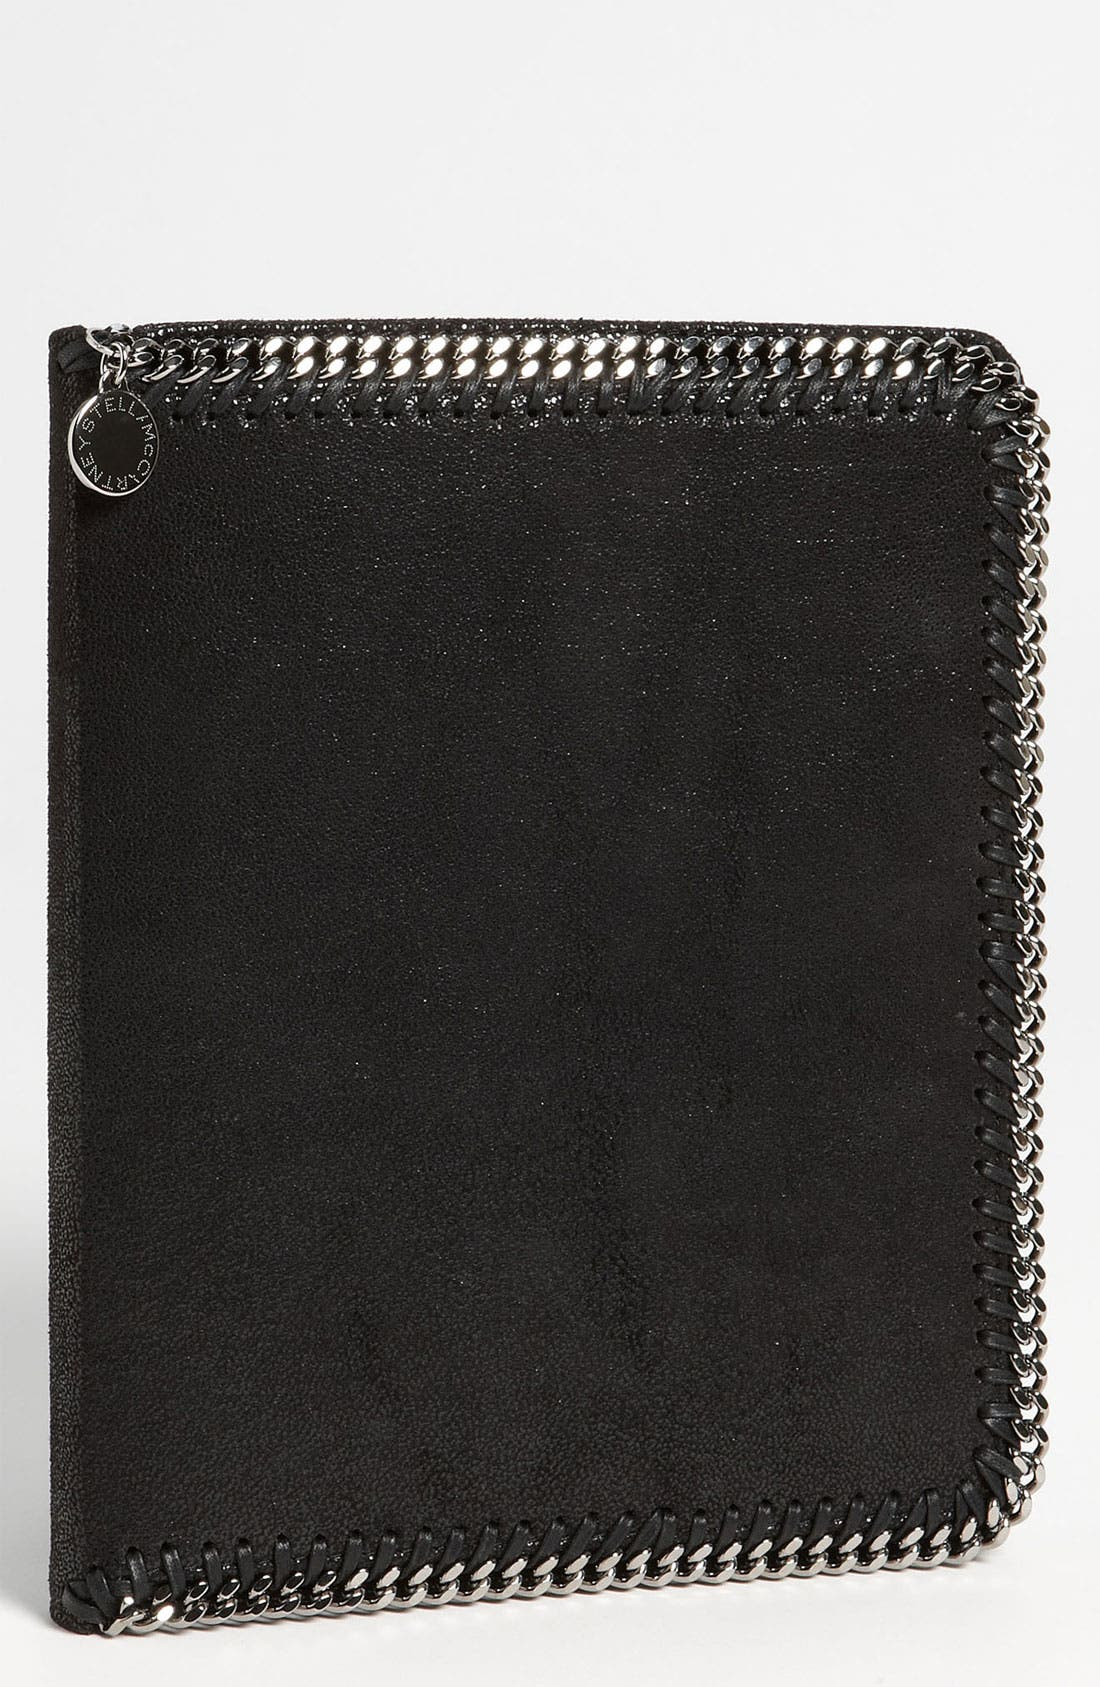 Main Image - Stella McCartney 'Falabella' iPad Case